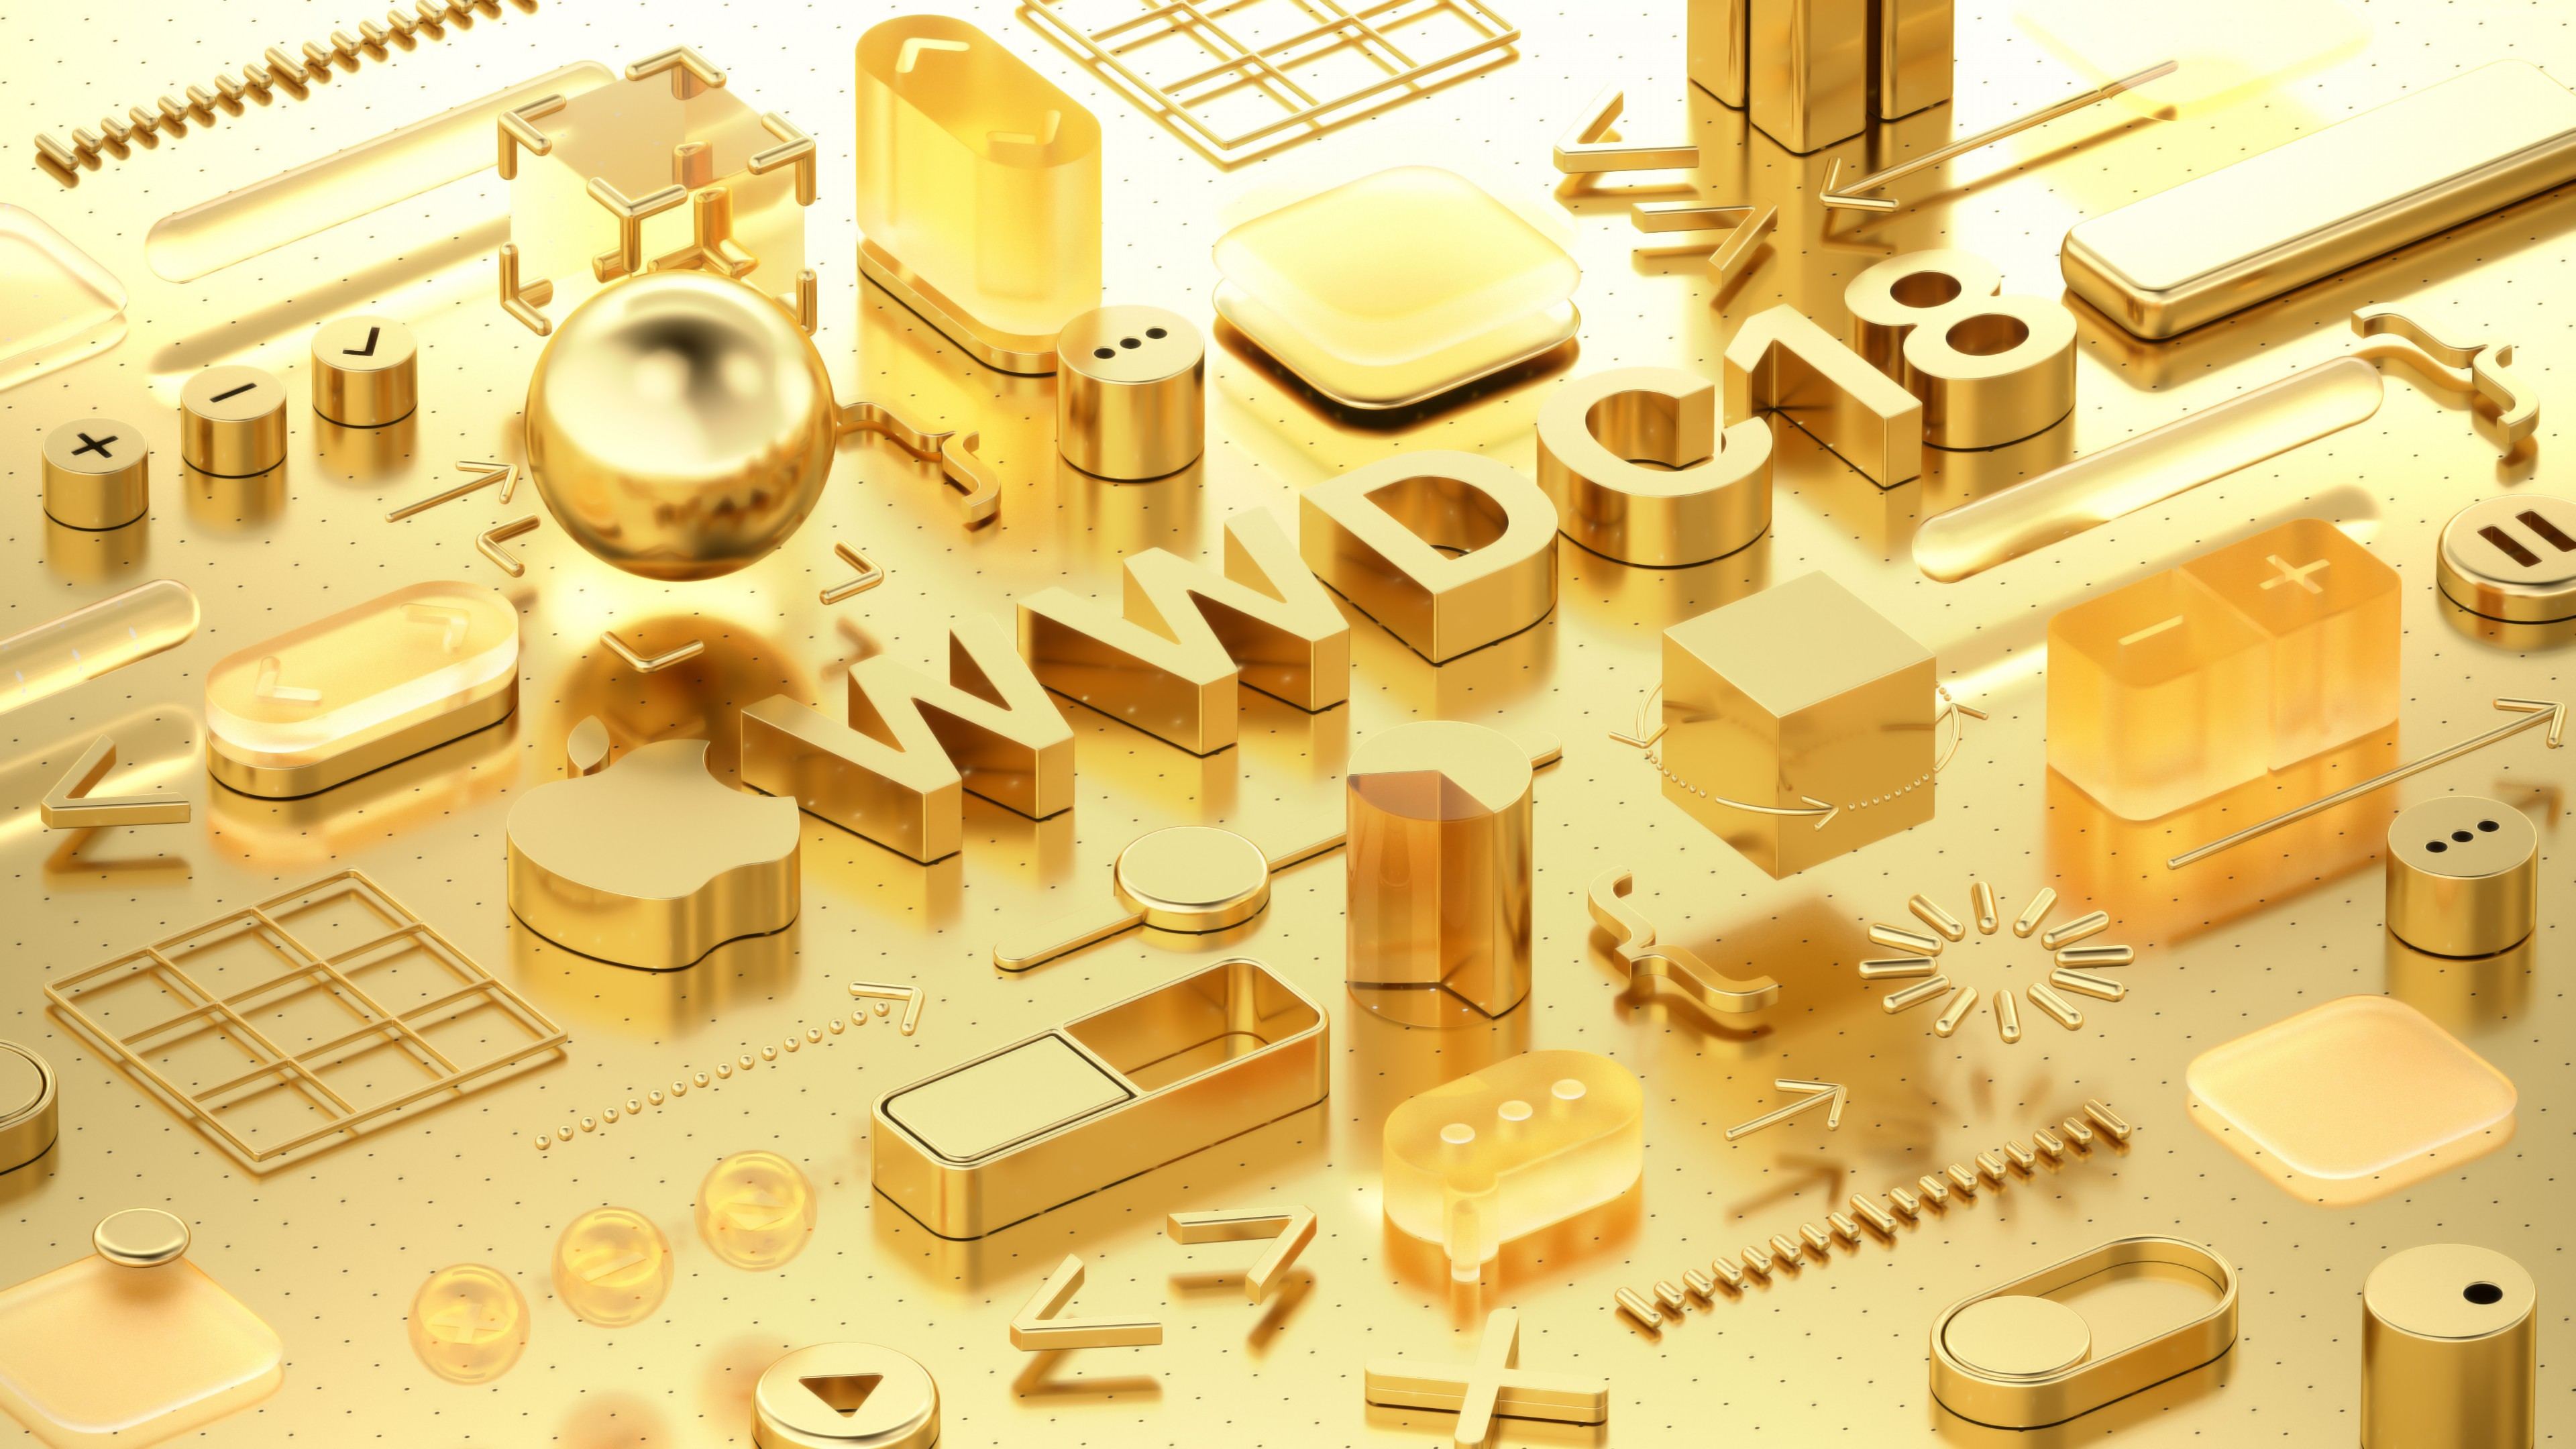 Wallpaper WWDC 2018, Gold, 3D, 4K, OS